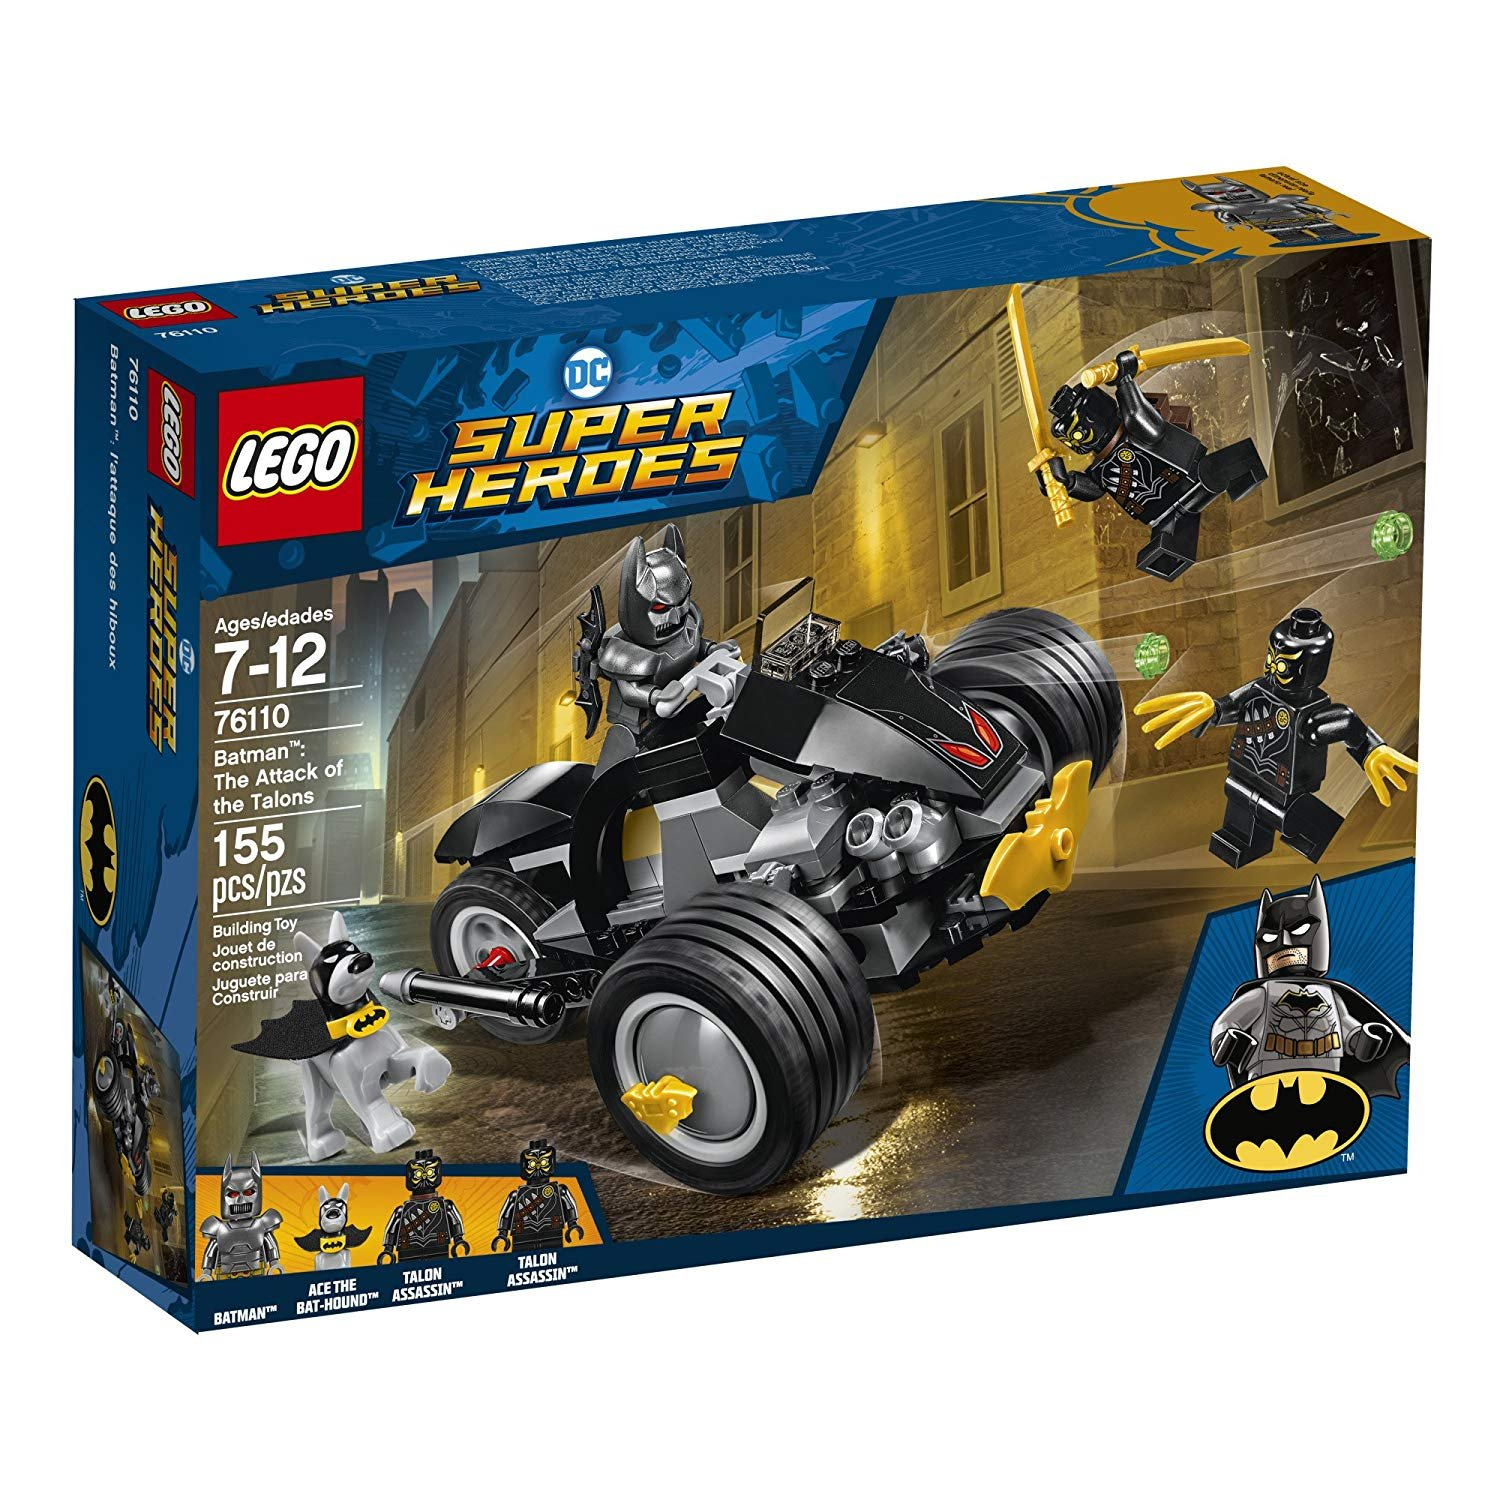 Lego Batman: The Attack of the Talons (76110)